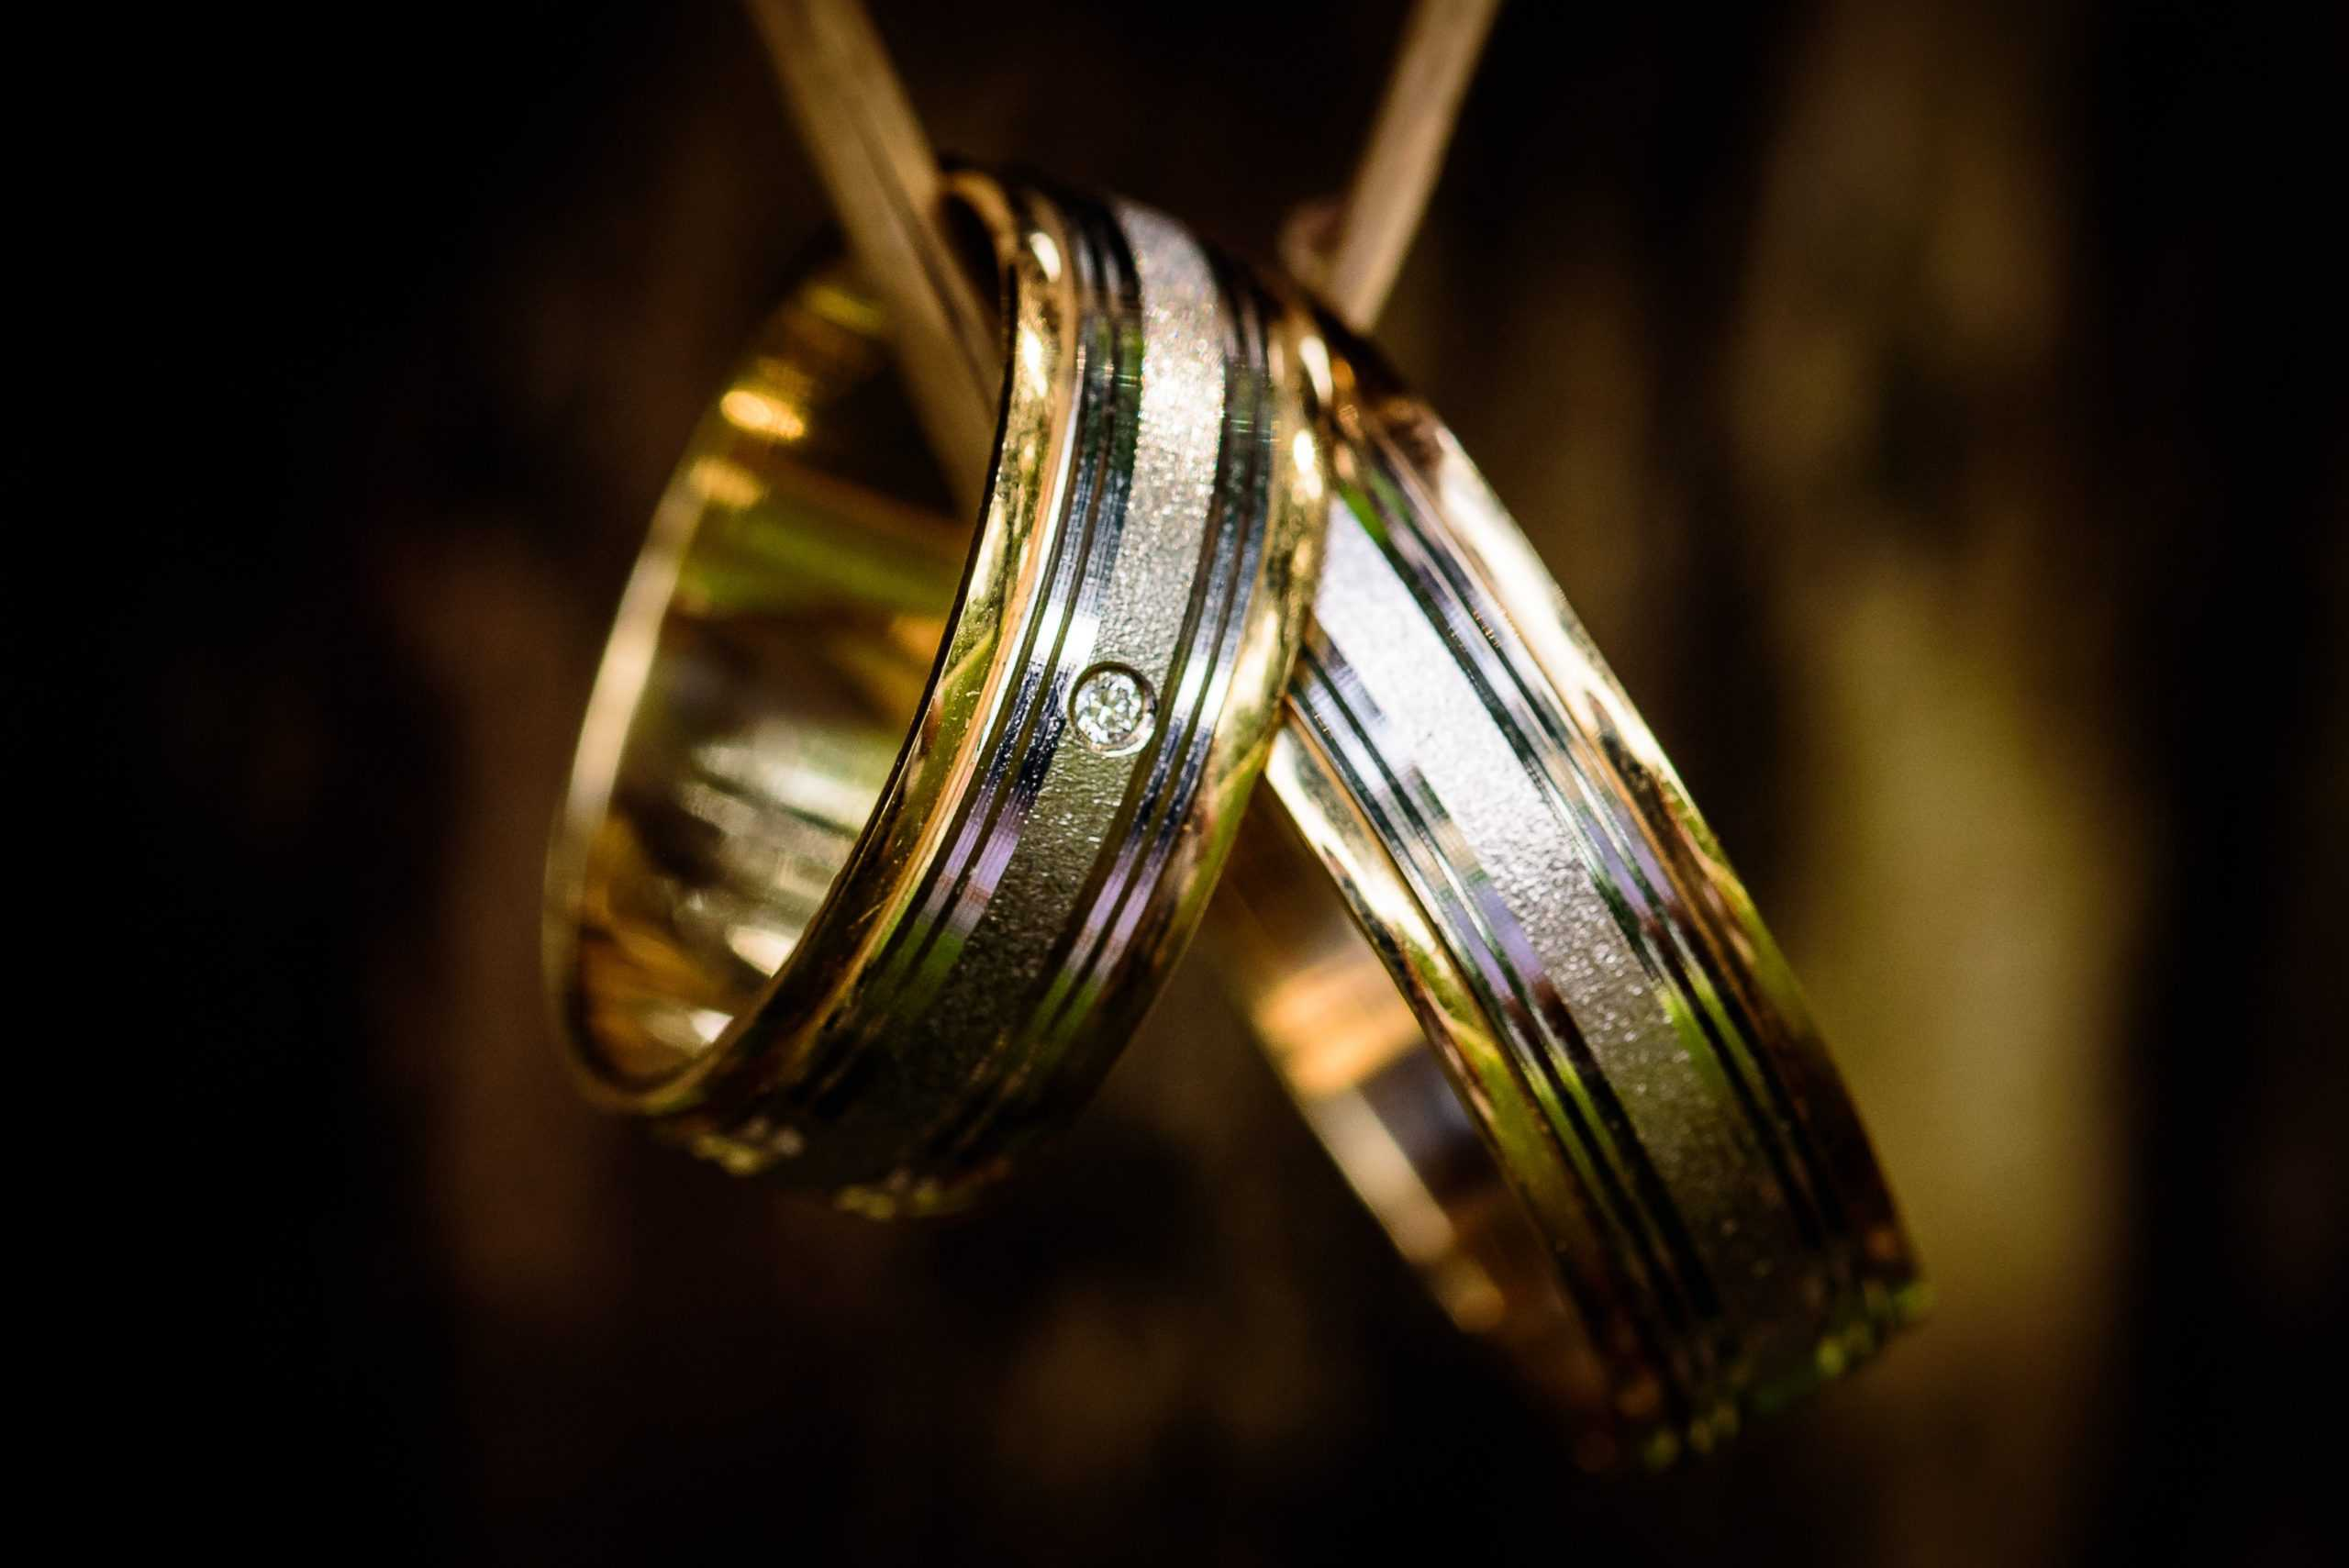 silver and gold rings on chain